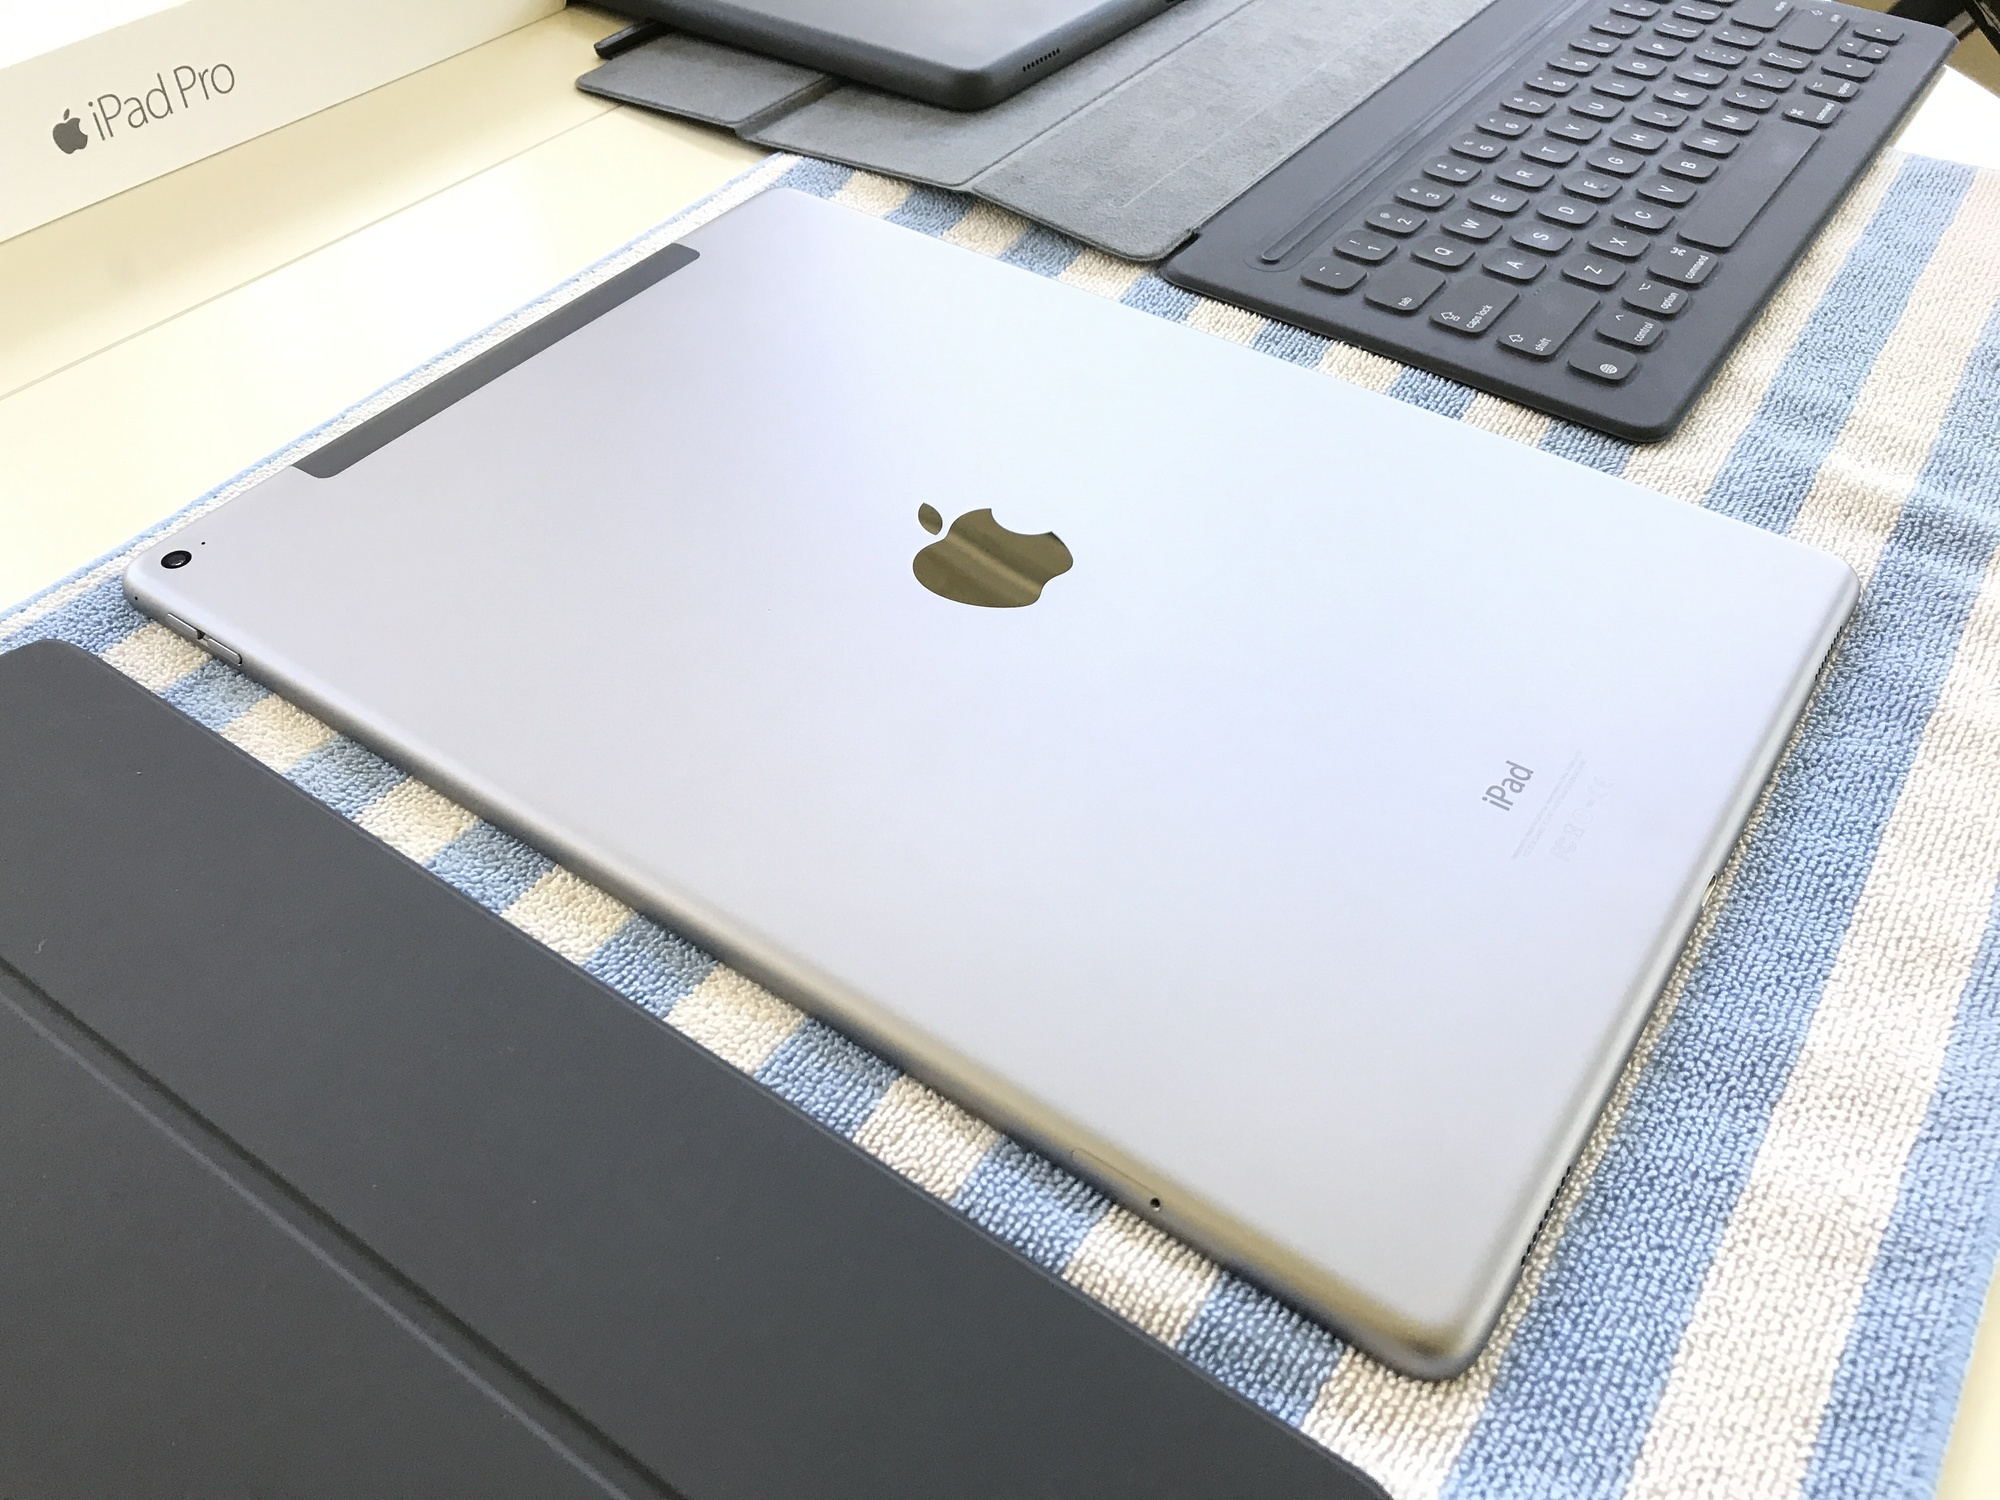 sold ipad pro 12 9 inch wi fi cellular 128gb space gray keyboard and cases fm forums. Black Bedroom Furniture Sets. Home Design Ideas